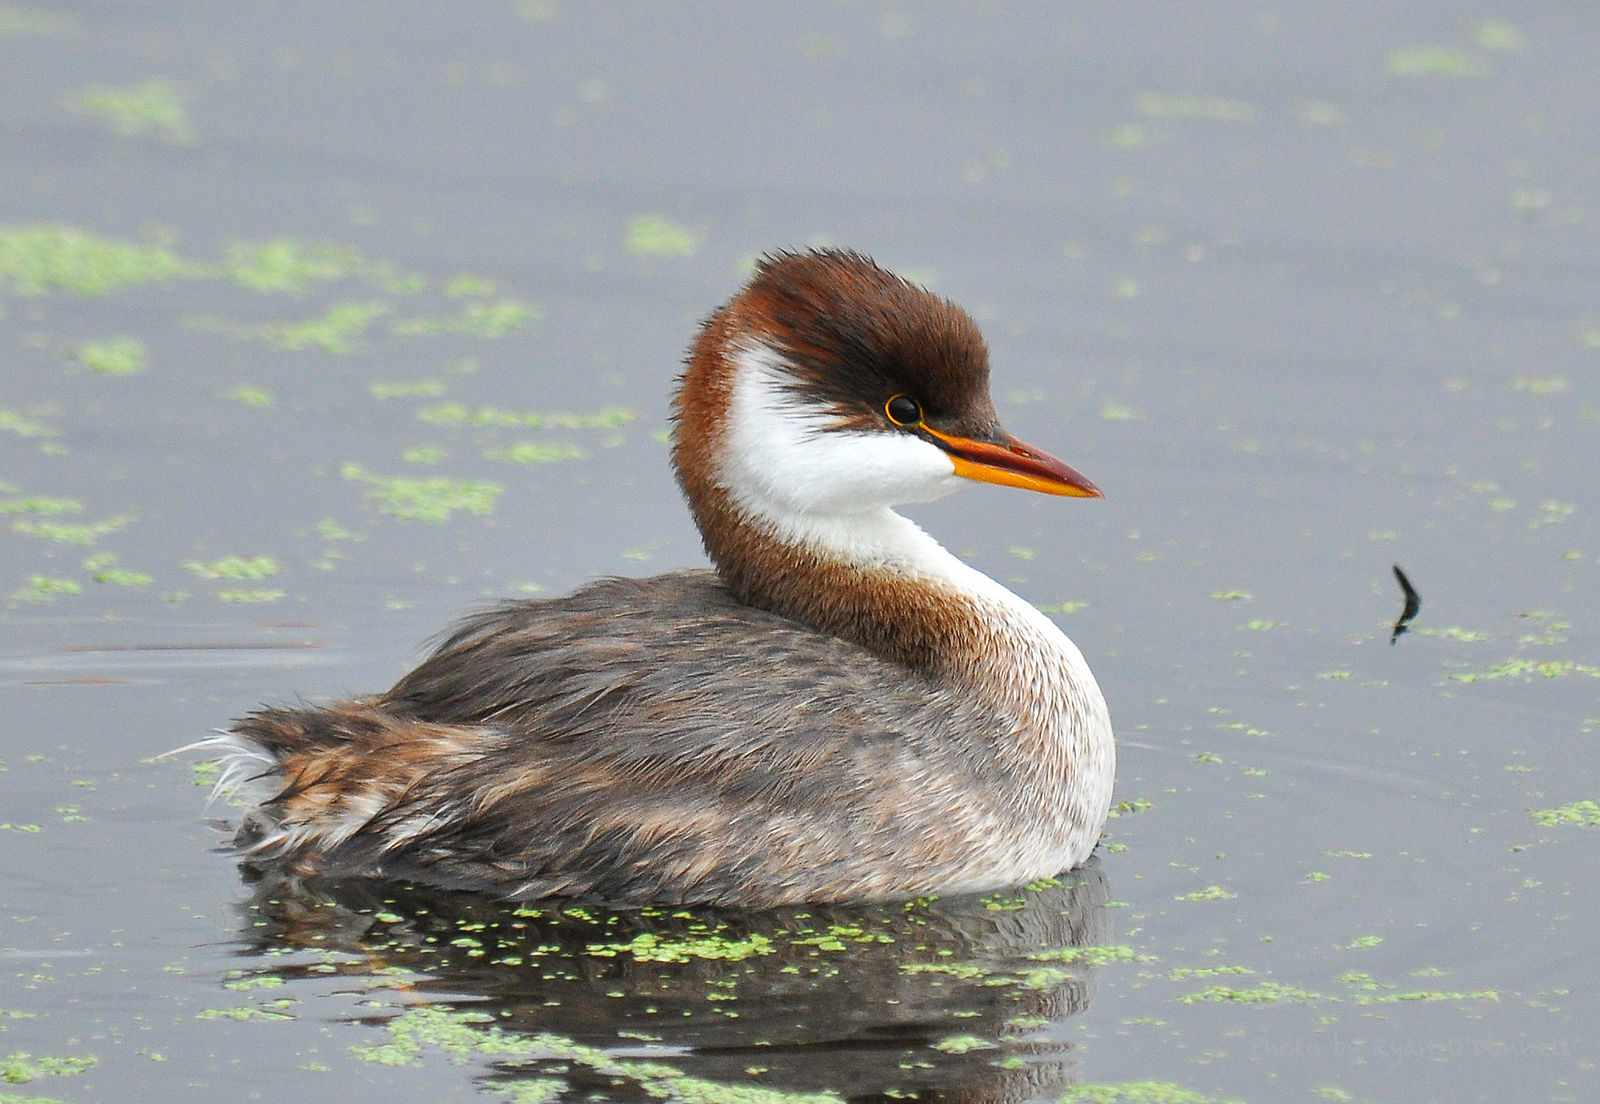 cute brown and white titicaca grebe swims in water